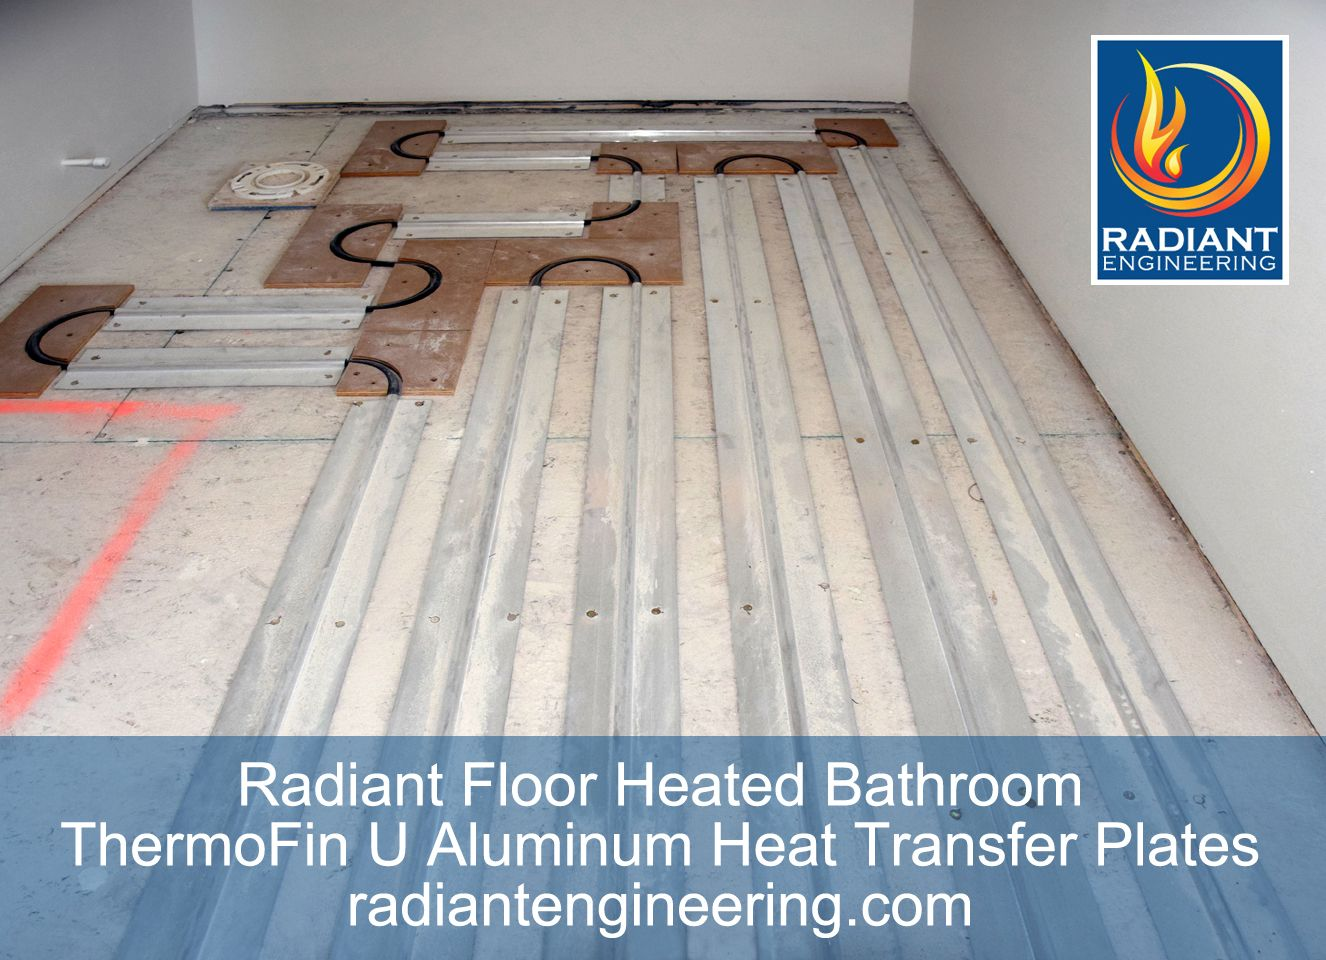 Radiant Floor Heating In A Bathroom With ThermoFin U Extruded Aluminum Heat  Transfer Plates. Patented